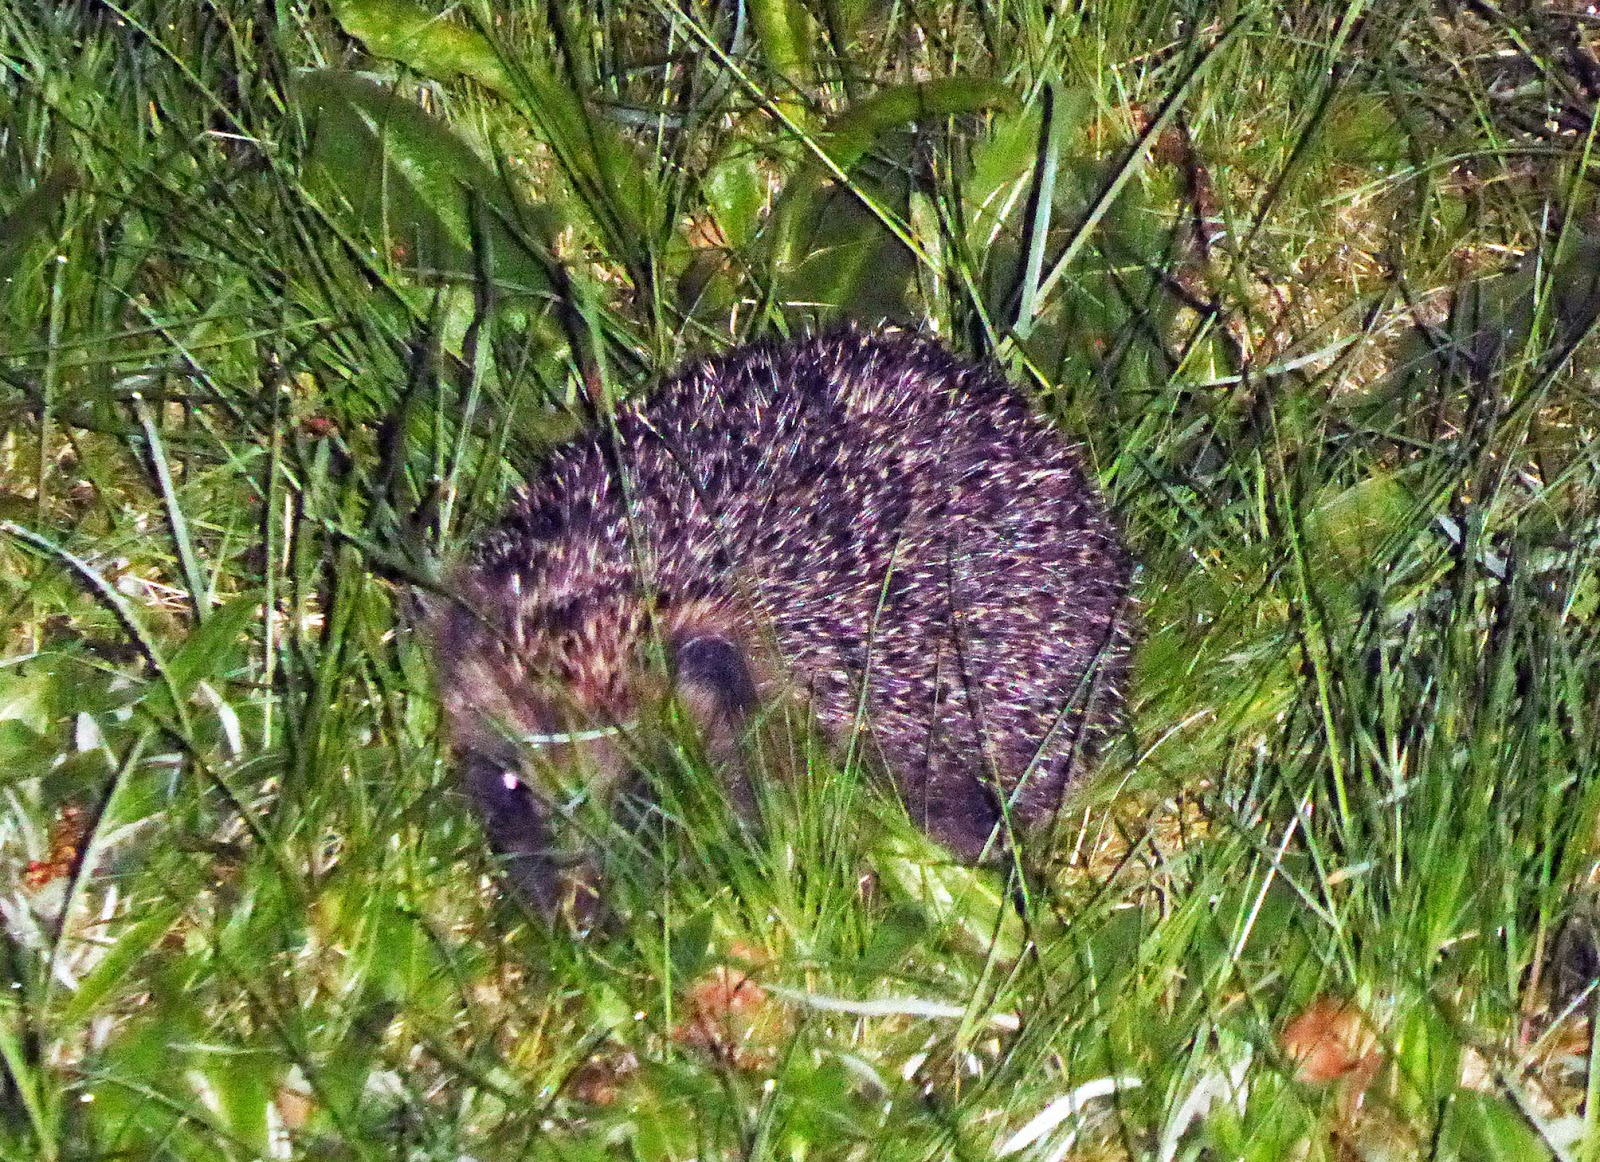 Wild and Wonderful: Hedgehogs in the Garden